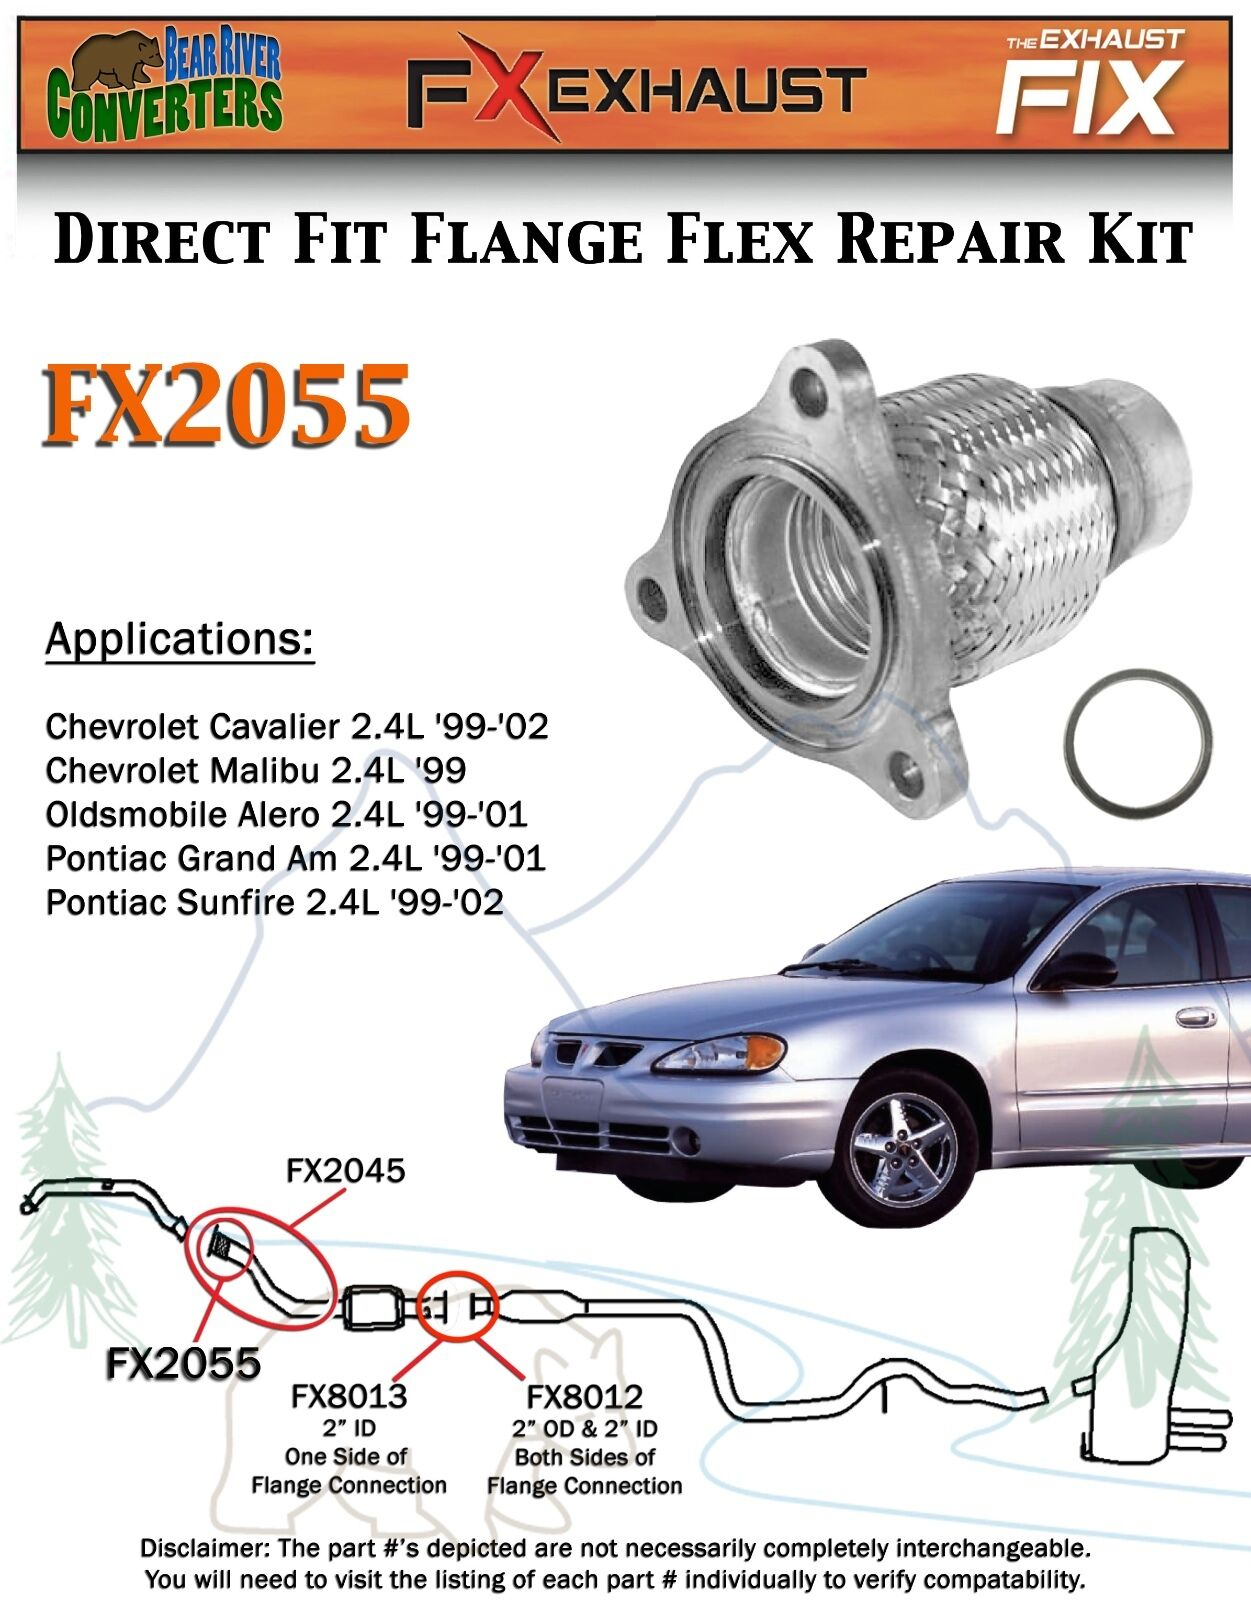 FX2055 Semi Direct Fit Exhaust Flange Repair Flex Pipe Replacement Kit w/  Gasket | eBay